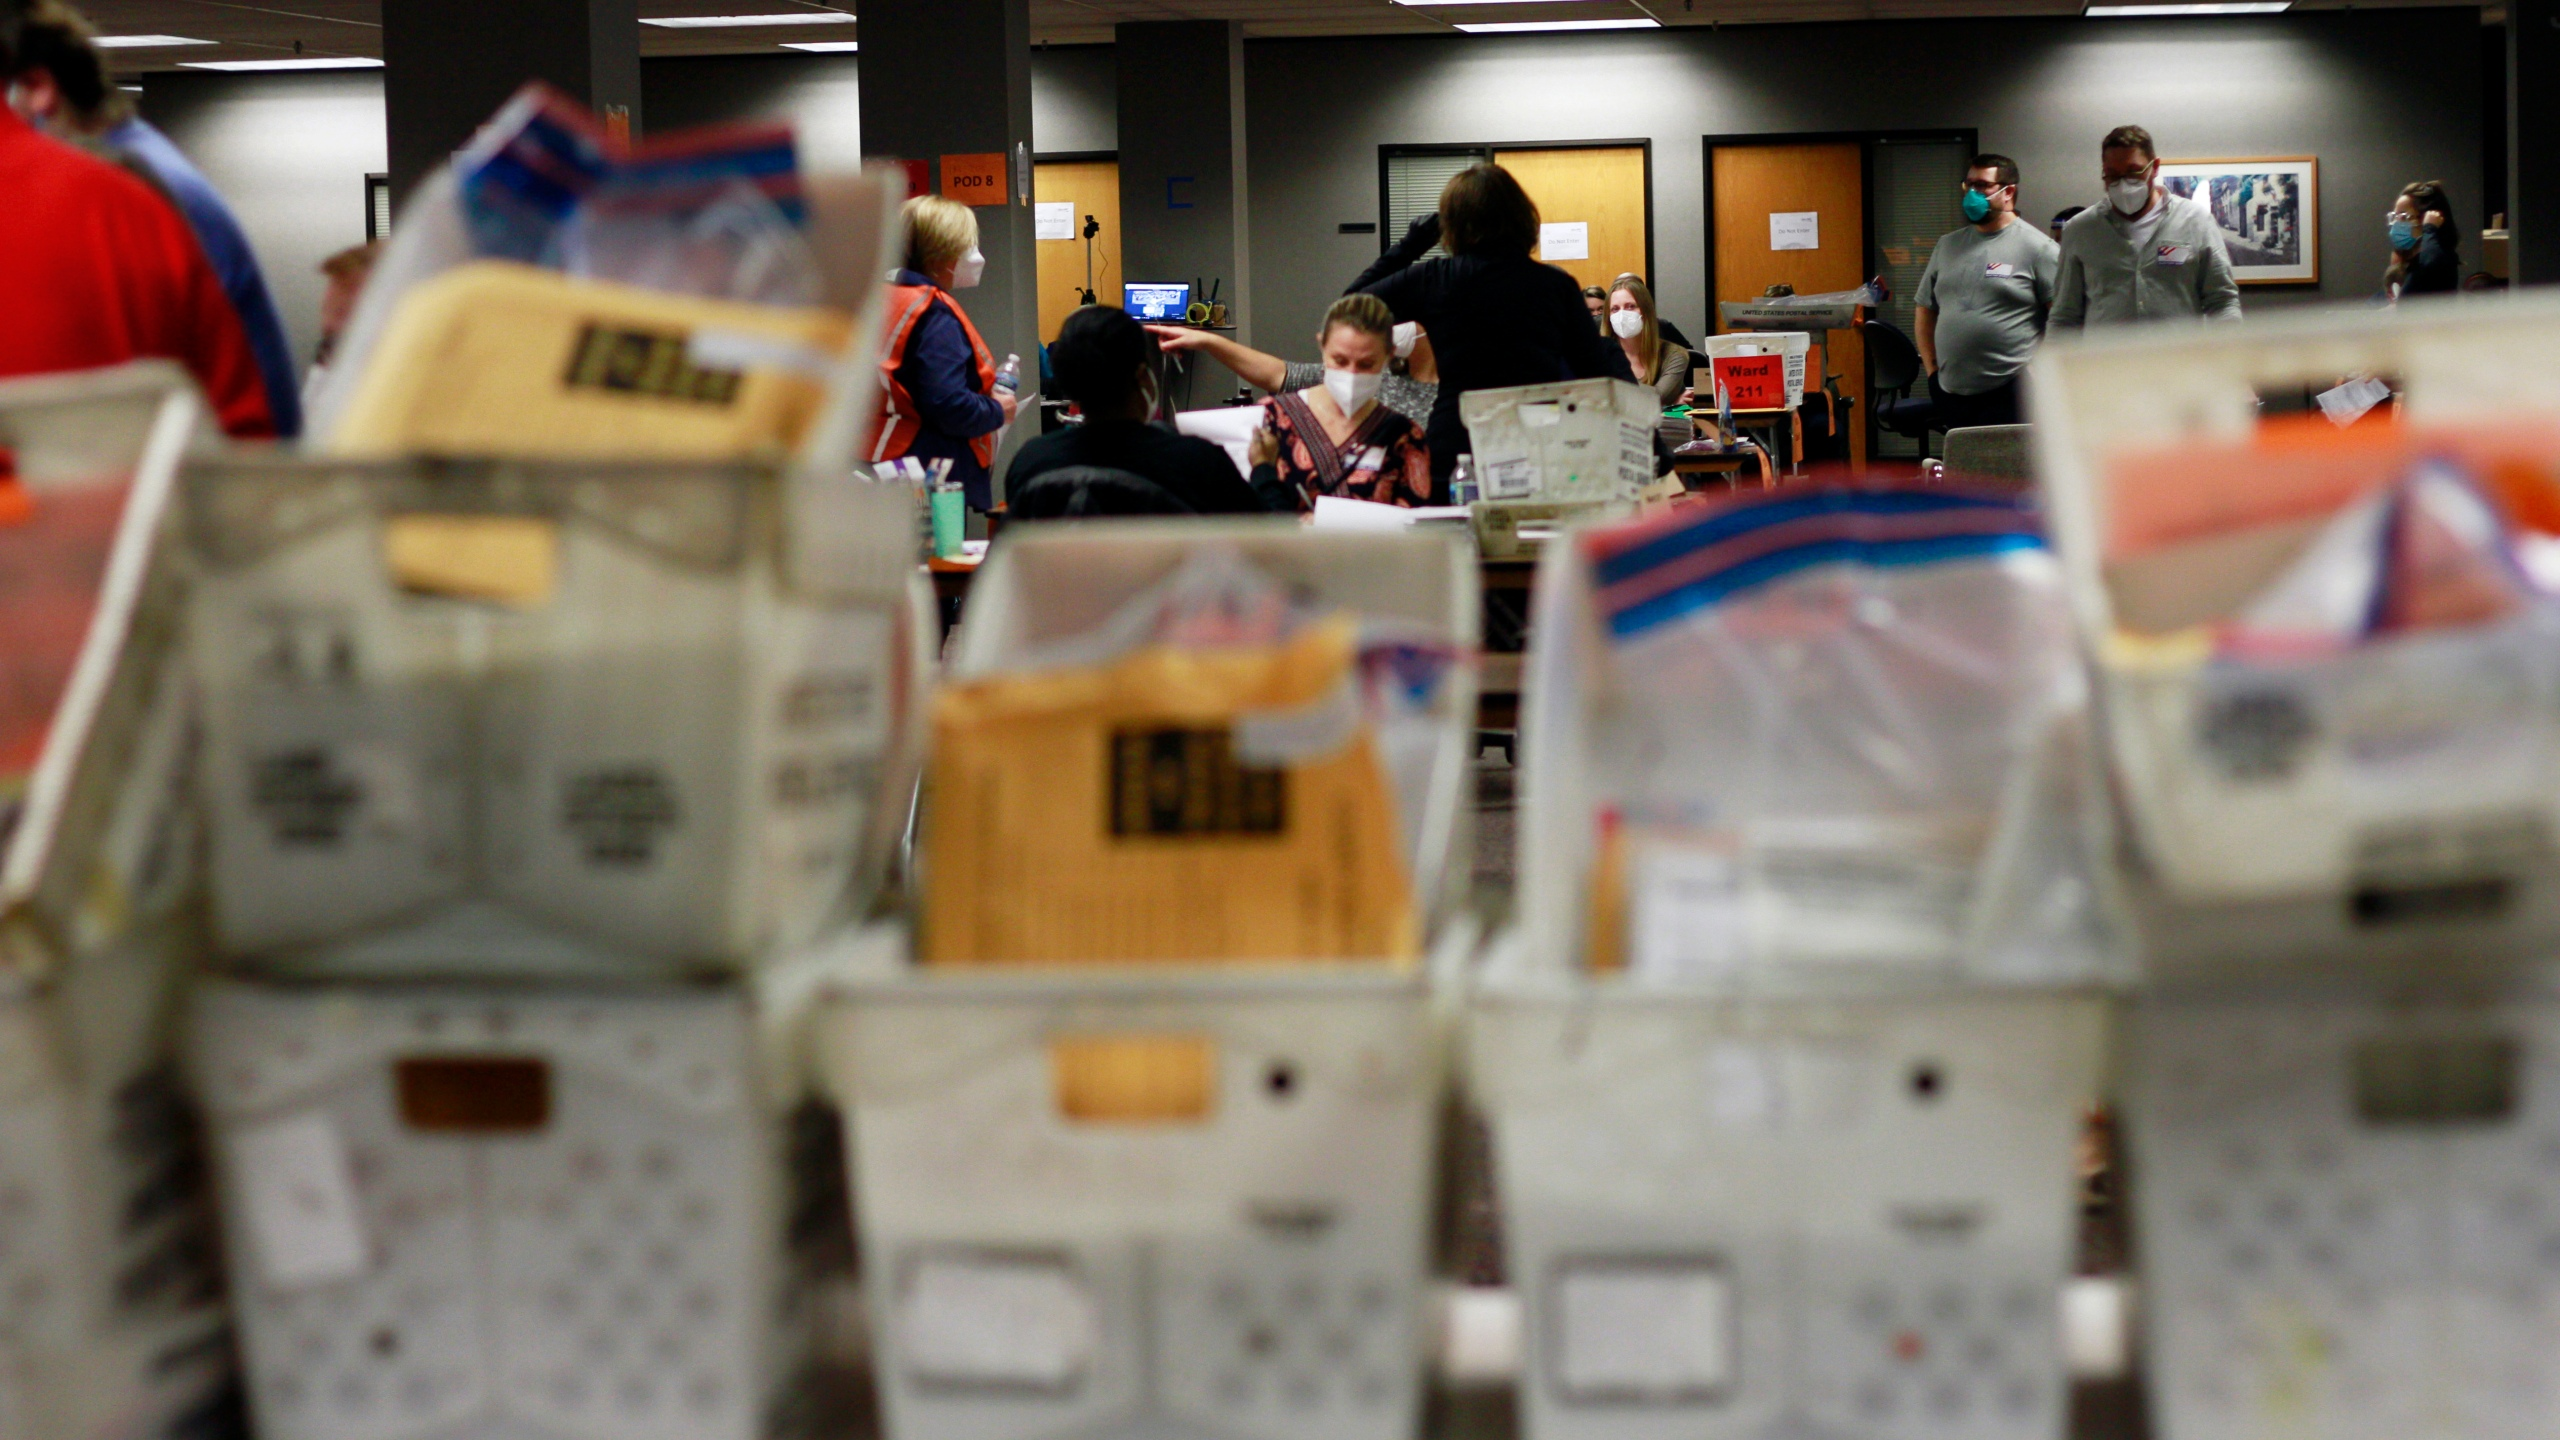 Election workers count absentee ballots into the early morning, Wednesday, Nov. 4, 2020 in Milwaukee at a central counting facility. (AP Photo/Stephen Groves)